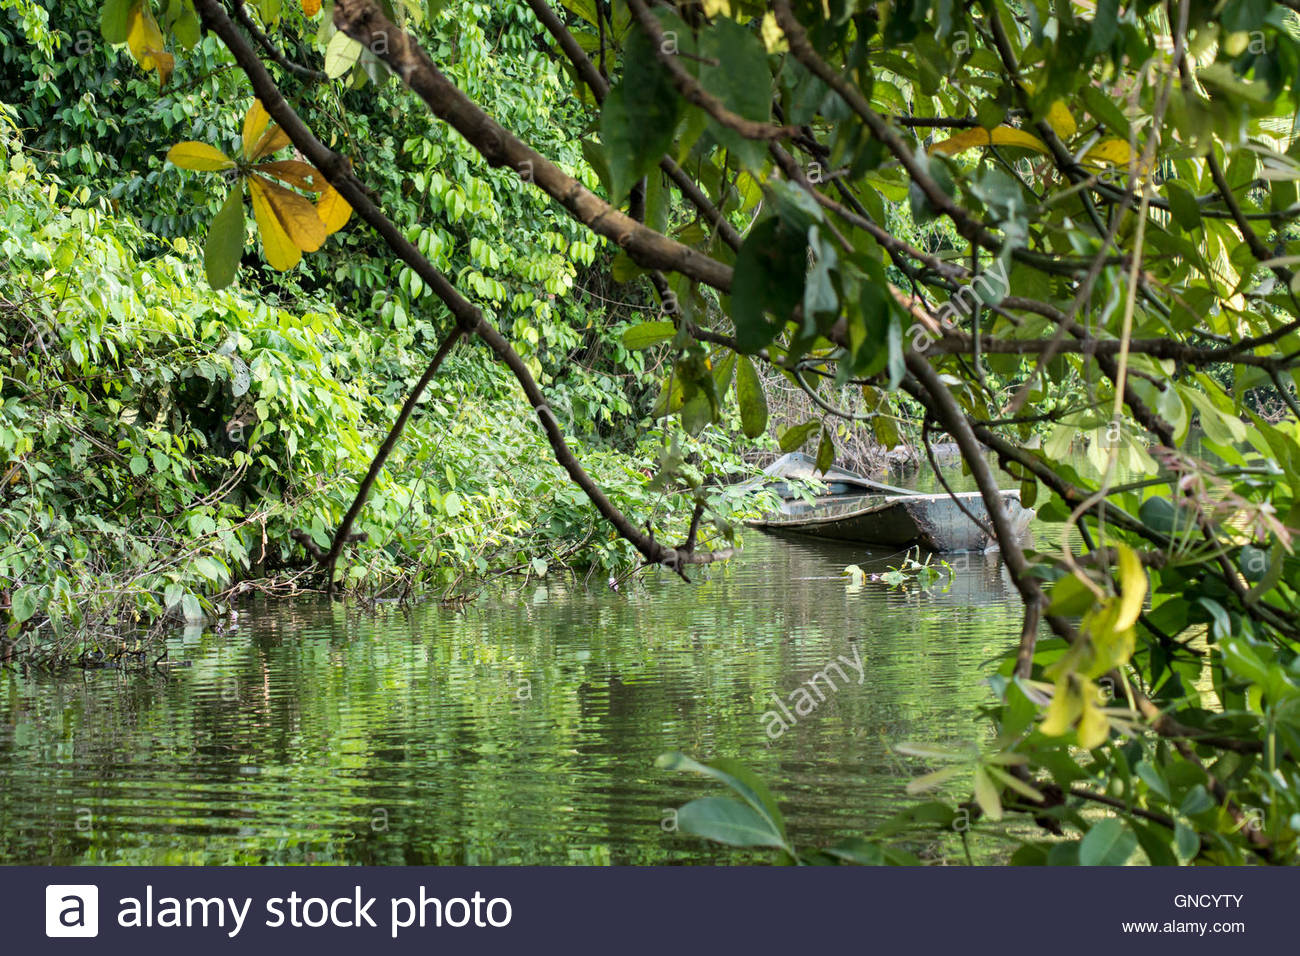 Aground or stranded boat at the shore of Lake Sandoval in Tambopata Reserve, Madre de Dios, Peru. Amazon rainforest. - Stock Image